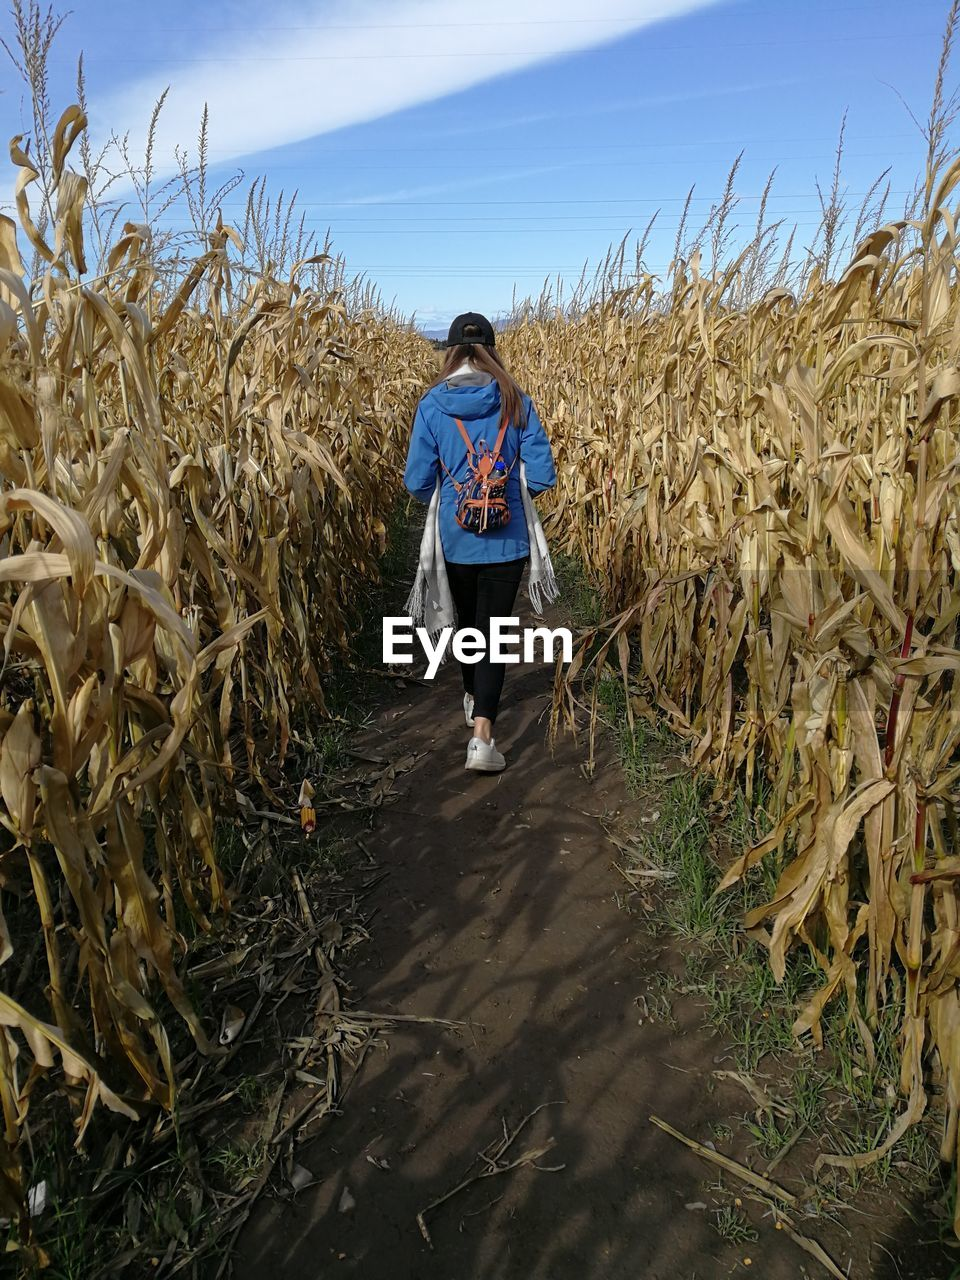 plant, agriculture, land, rural scene, farm, real people, growth, nature, sky, one person, field, landscape, full length, cereal plant, crop, lifestyles, walking, standing, day, leisure activity, outdoors, farmer